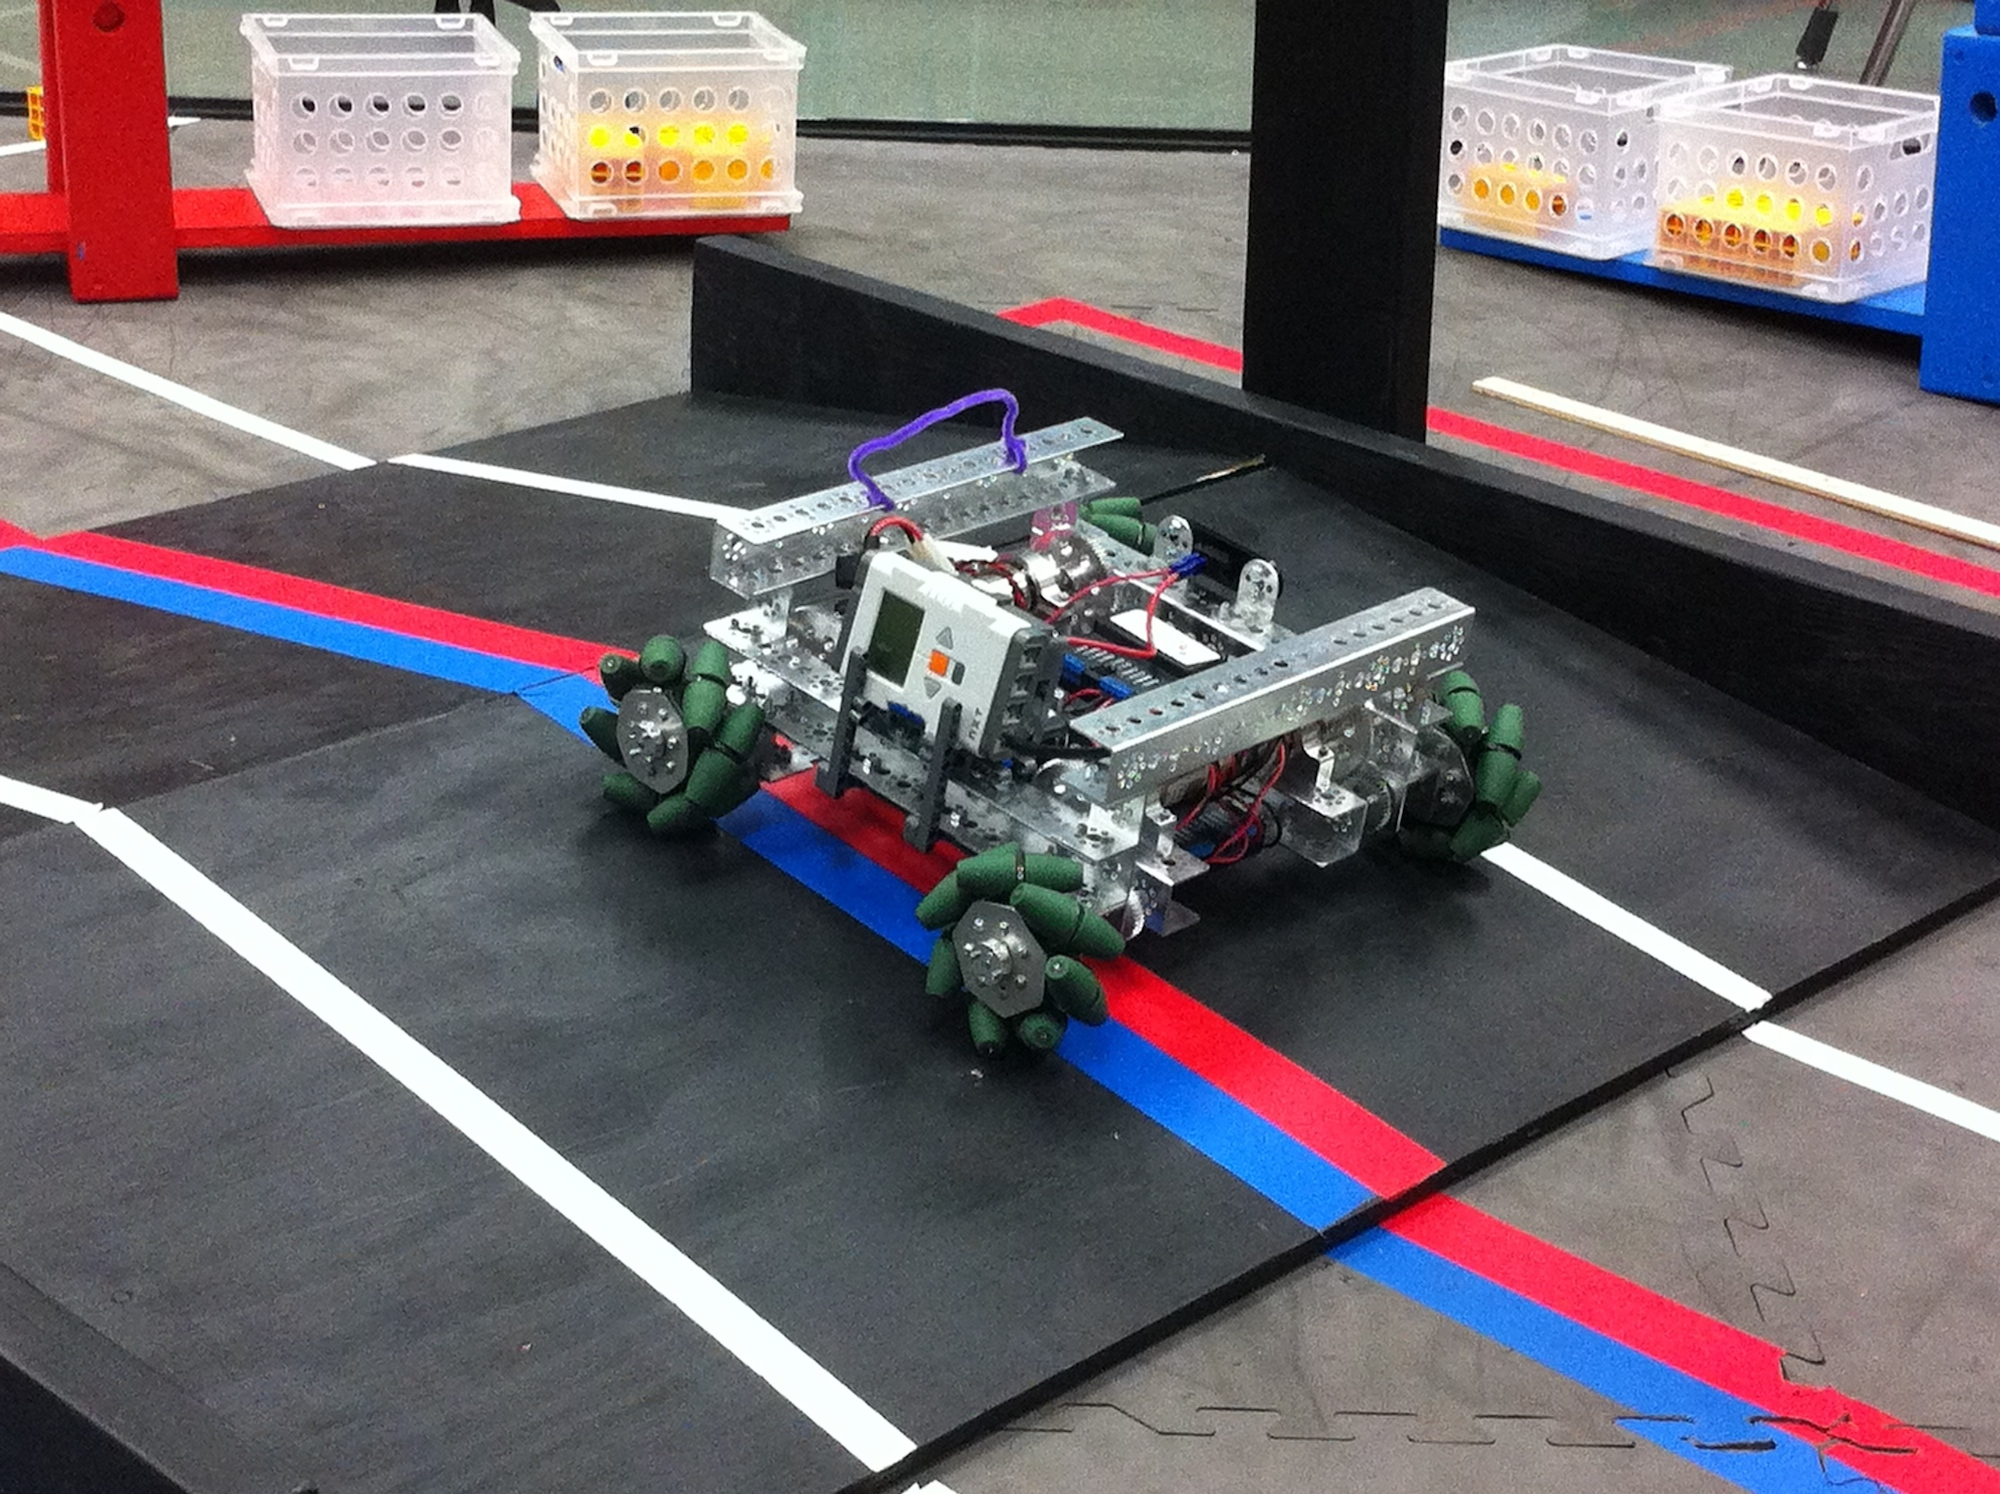 Suit Bots FTC Team 4628 Mecanum drive